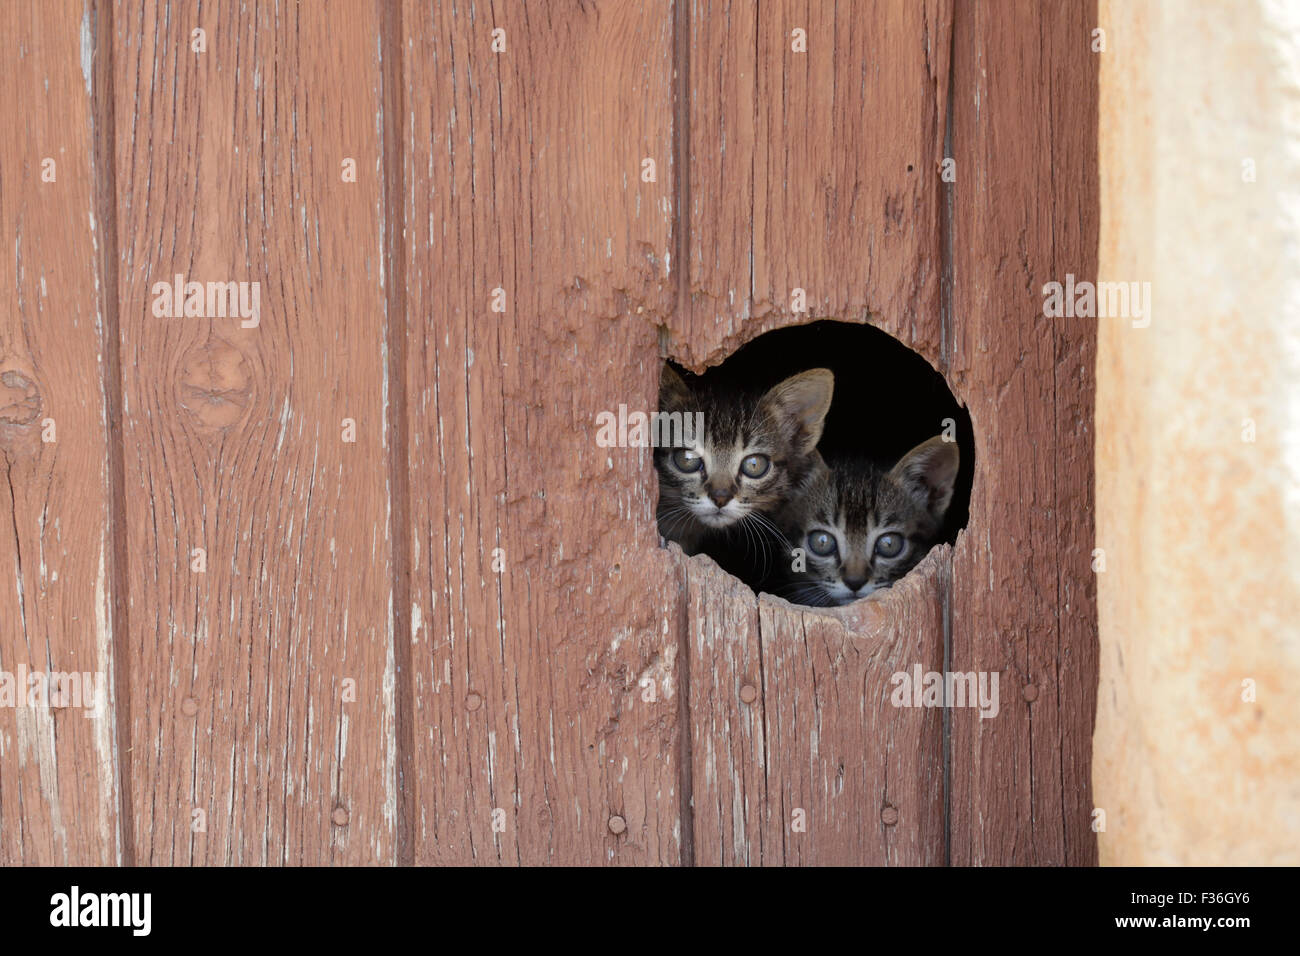 Delightful Two Little Cats Looking Trough A Cat Hole In A Door.